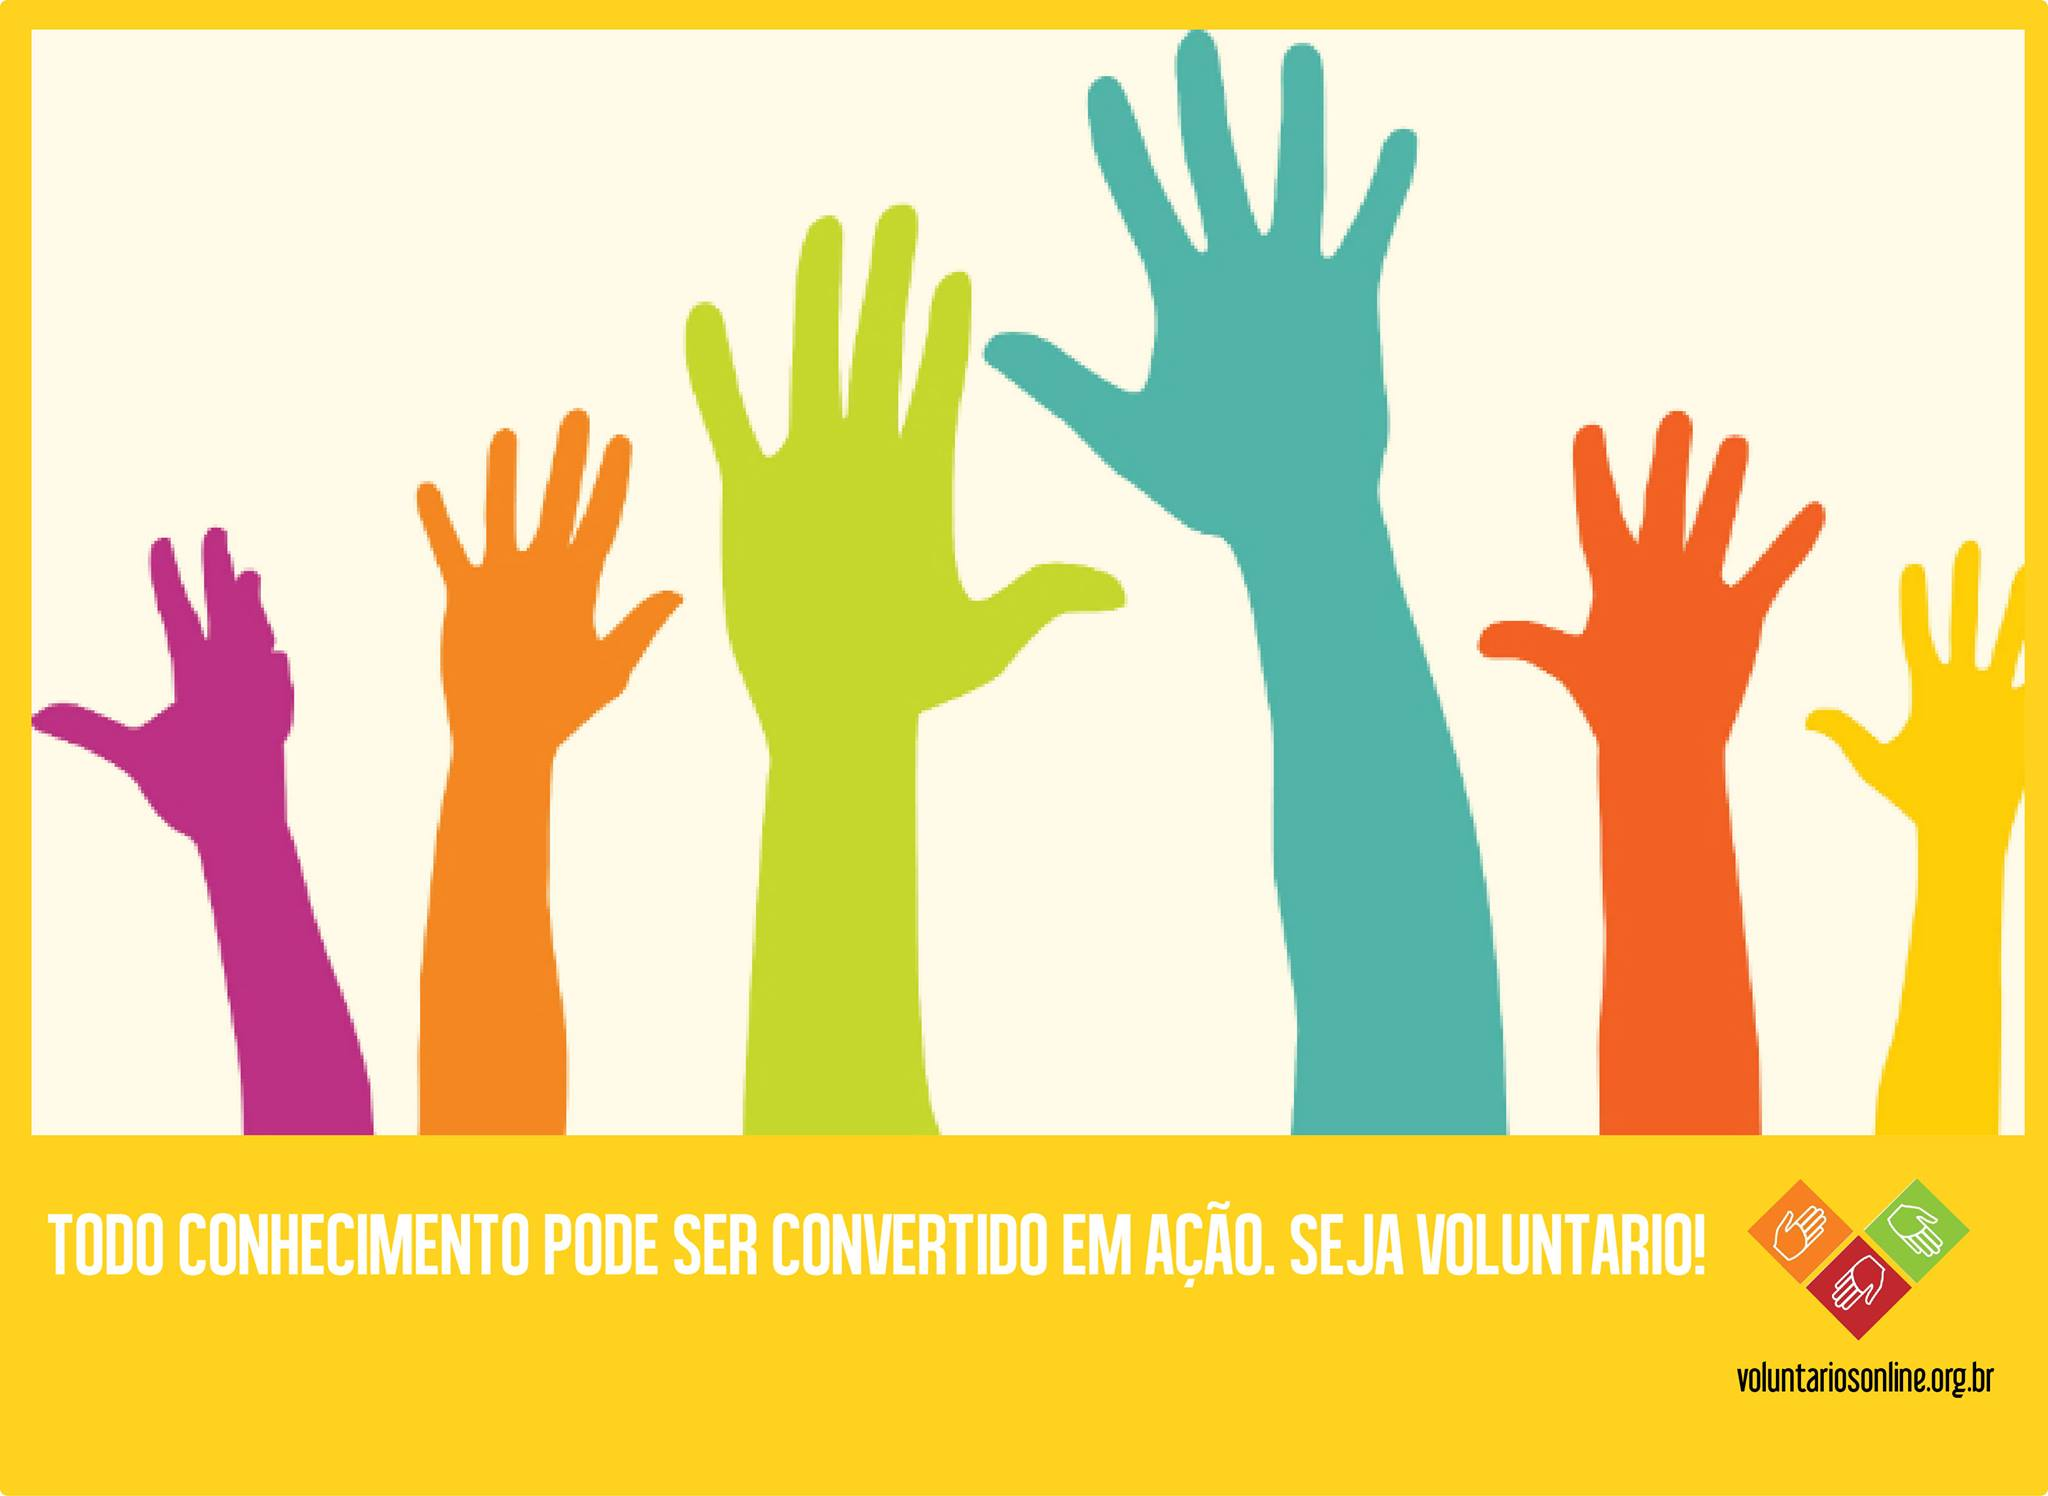 voluntariosonline